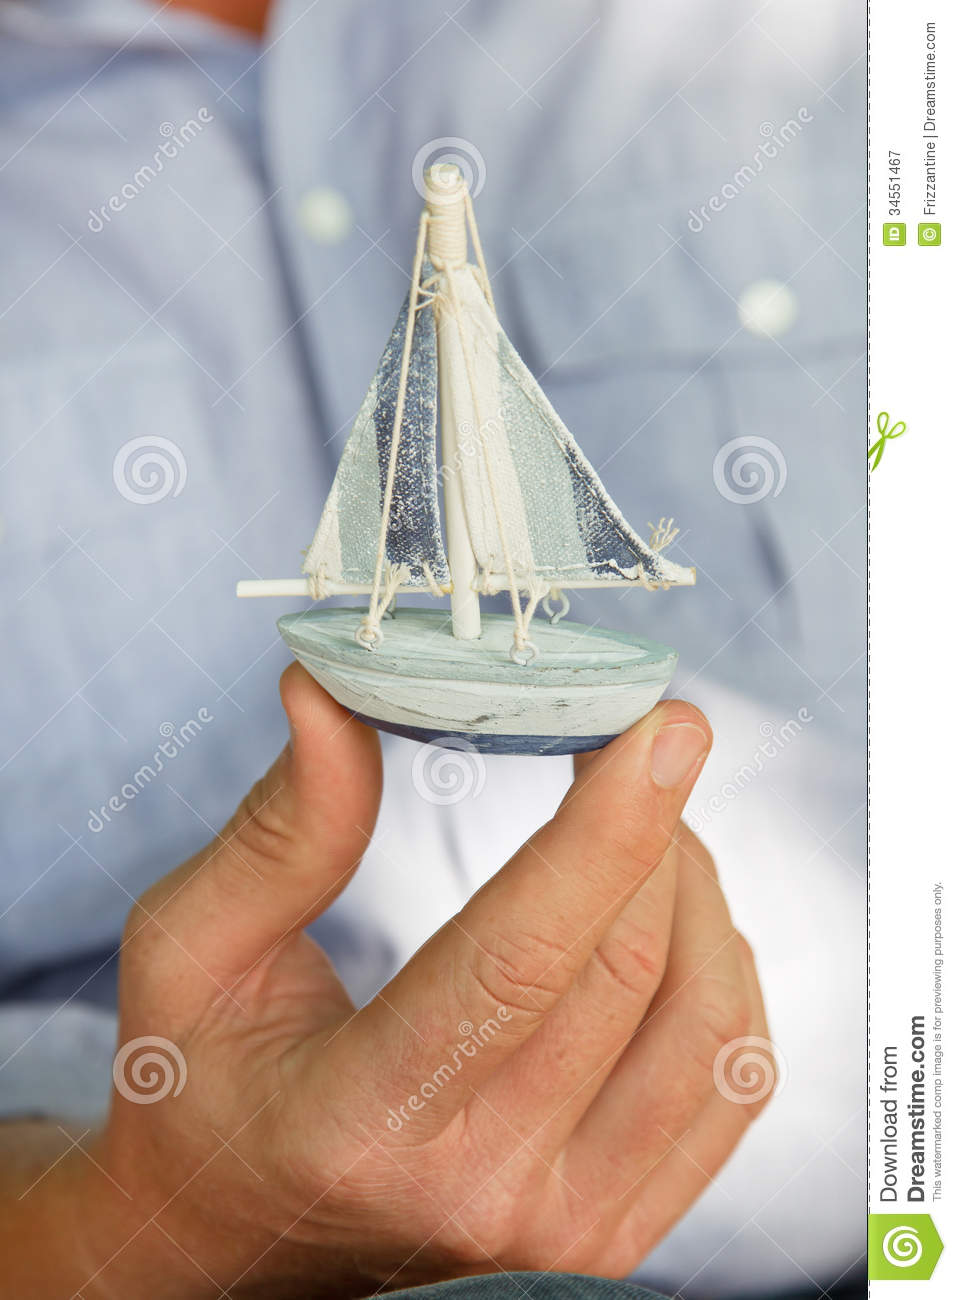 Man Holding A Small Toy Sailing Boat Concept For Sailing